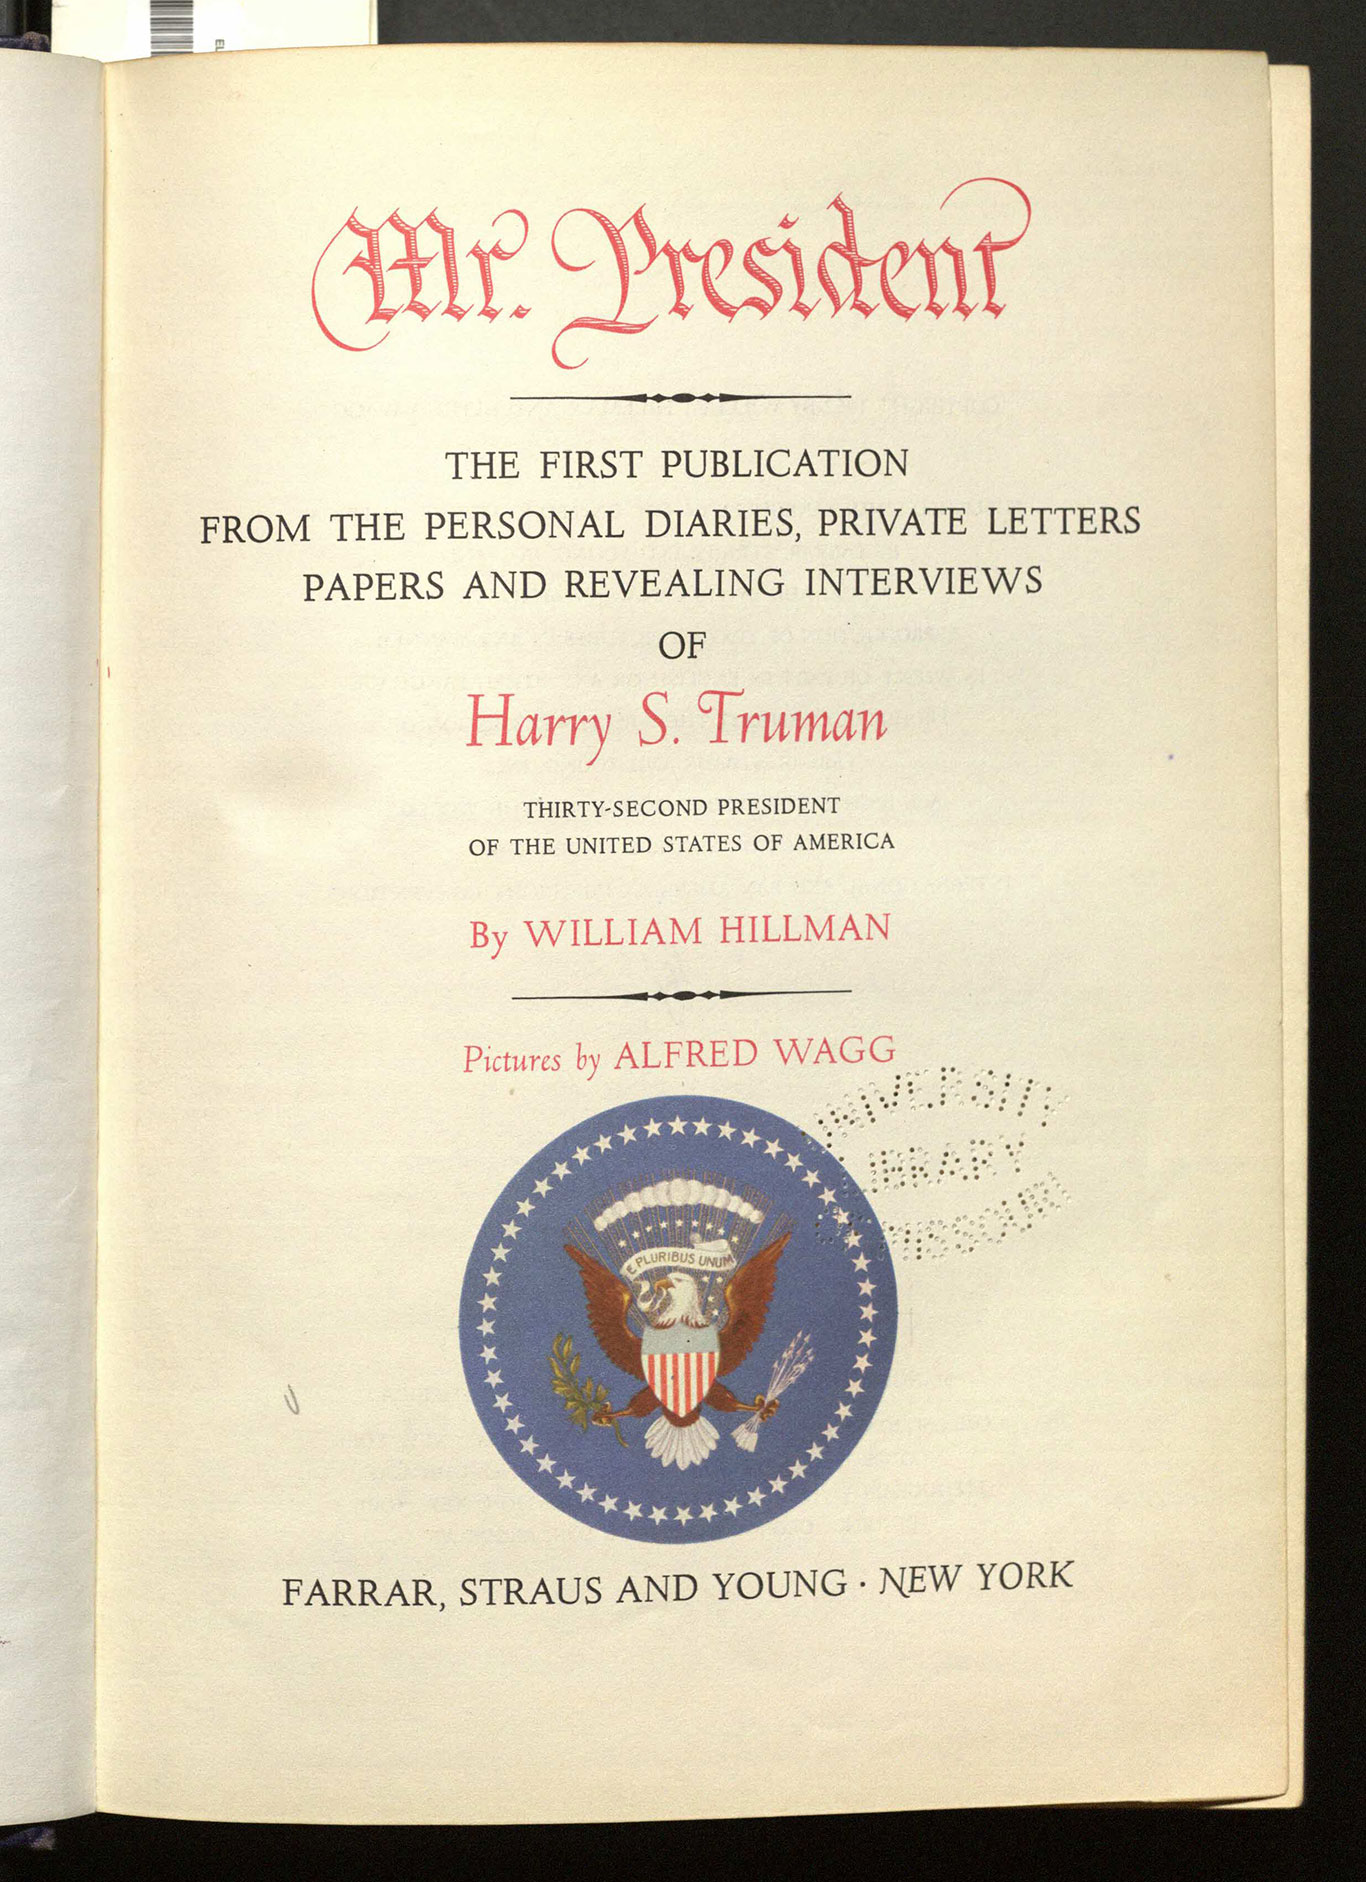 Mr. President : the first publication from the personal diaries, private letters, papers, and revealing interviews of Harry S. Truman, thirty-second President of the United States of America / by William Hillman ; pictures by Alfred Wagg.